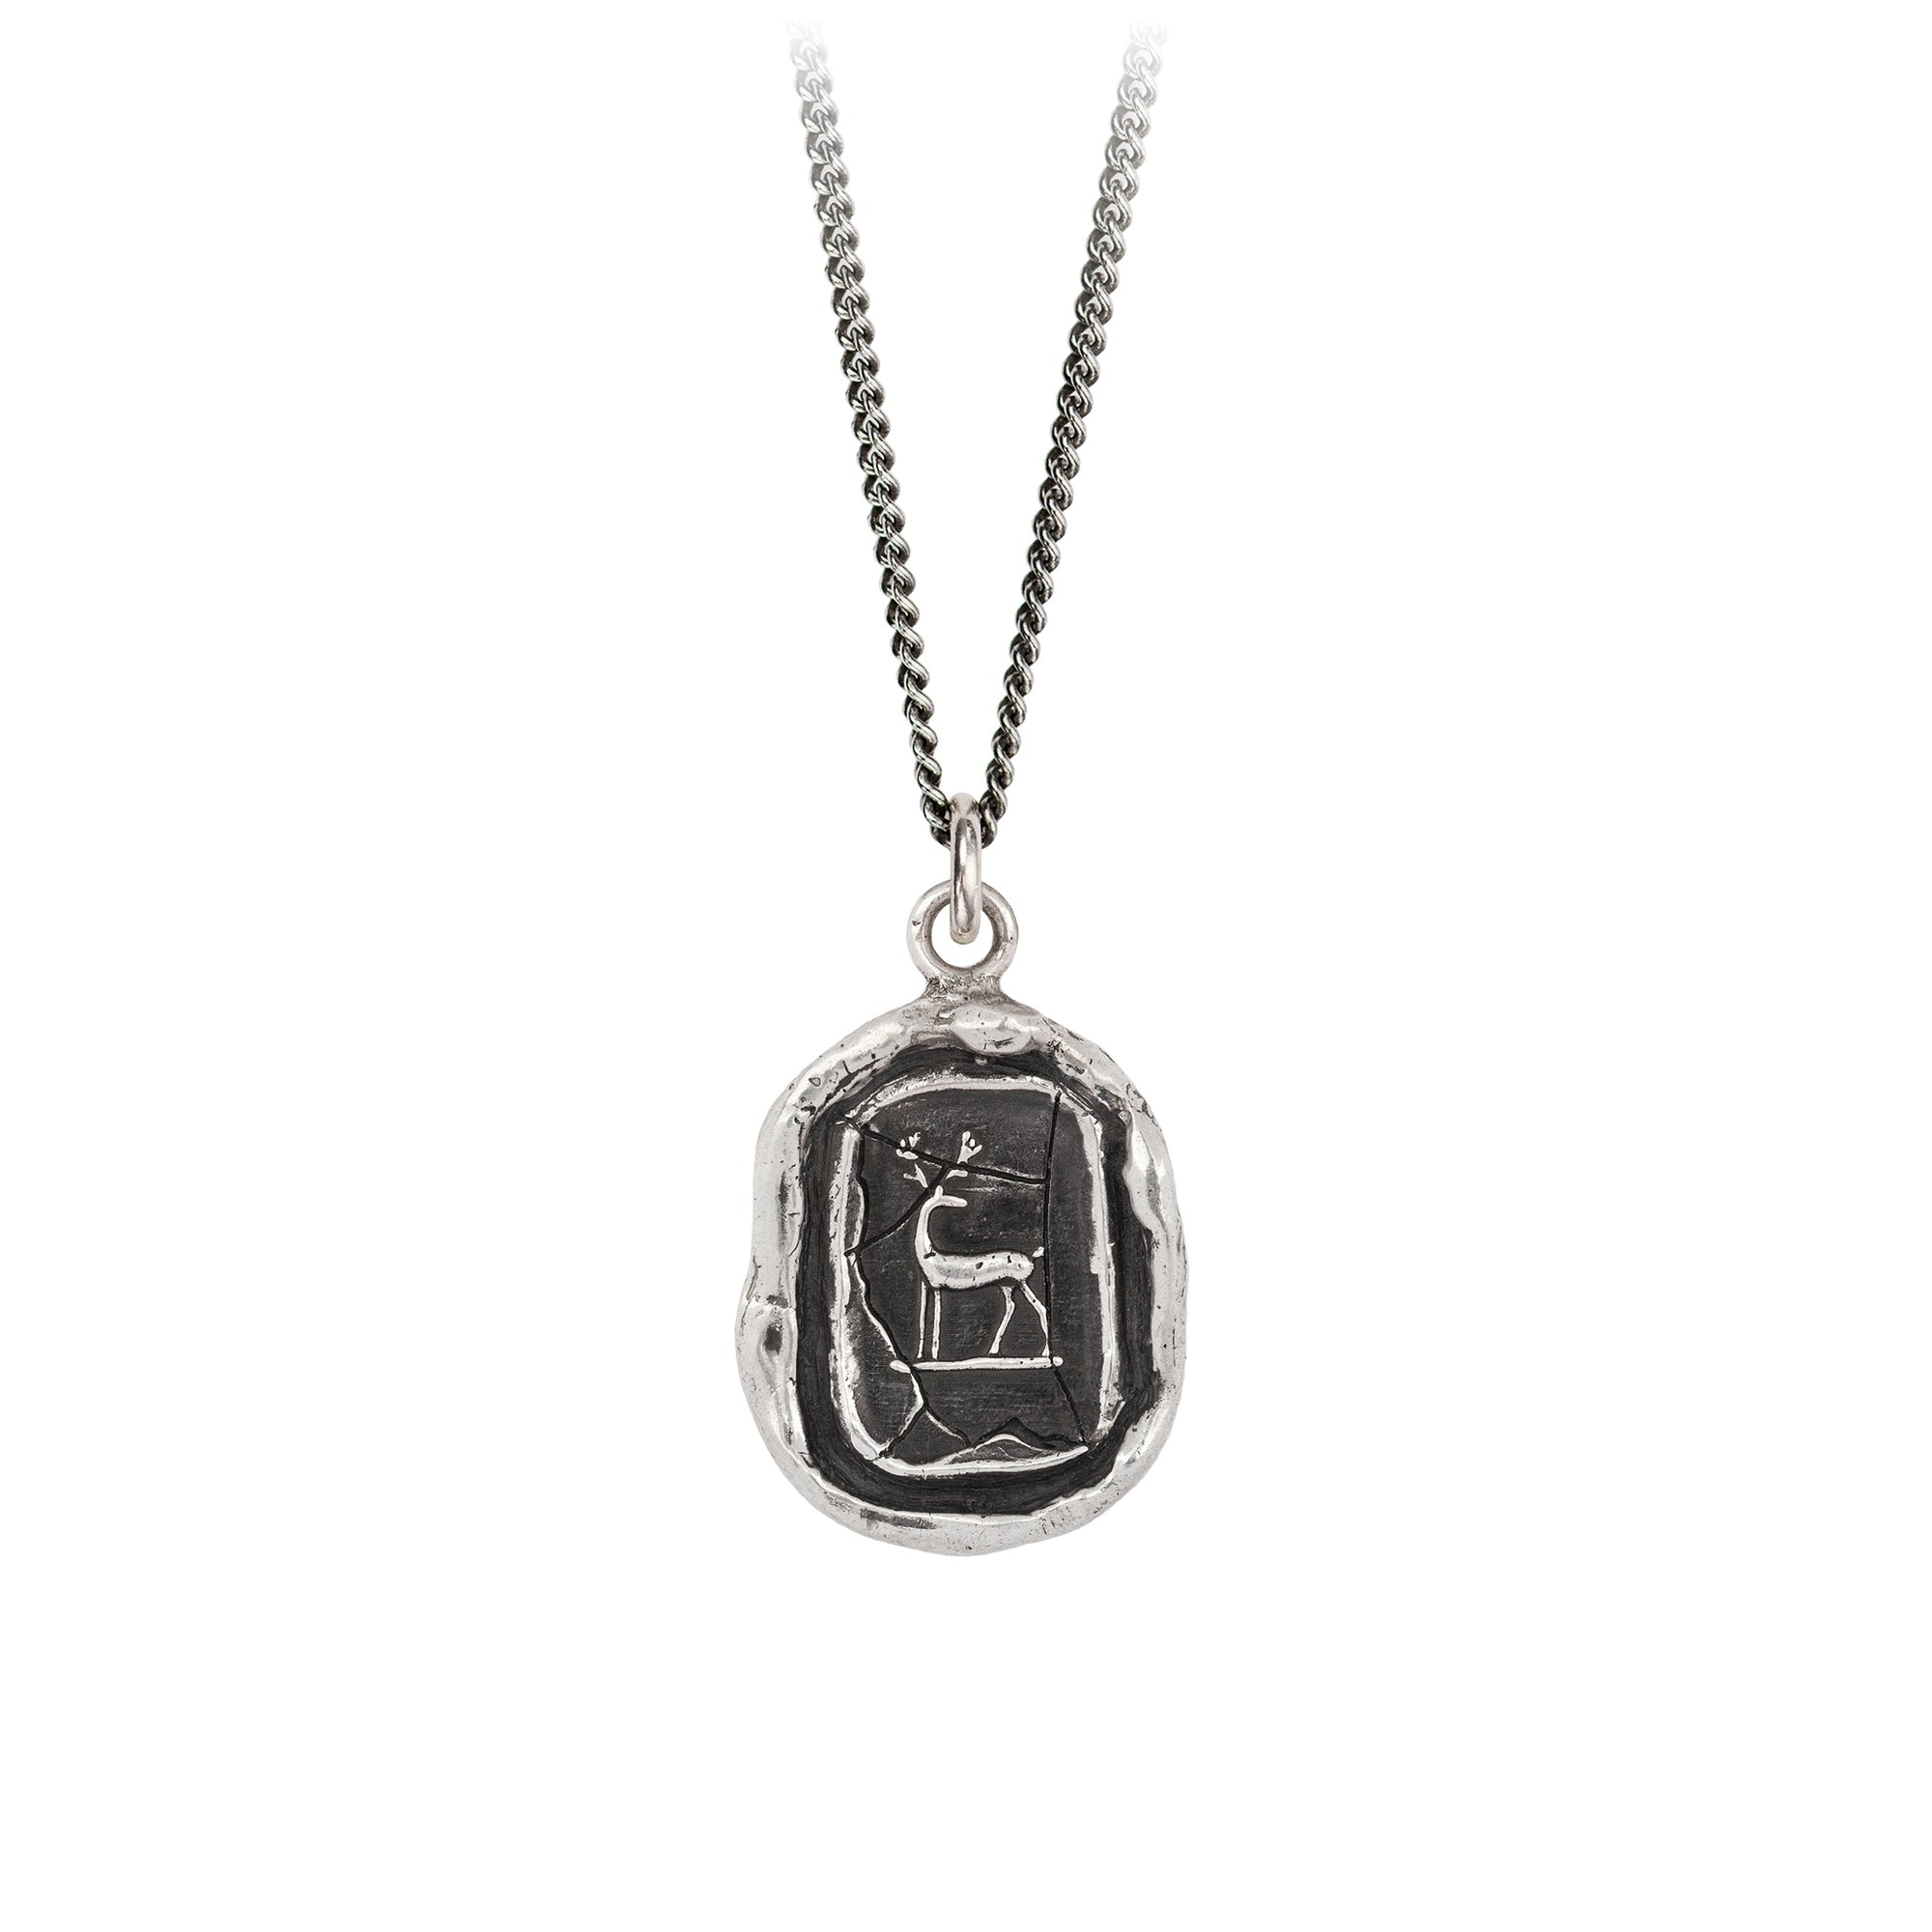 Pyrrha Whole Hearted Talisman Necklace Fine Curb Chain Silver